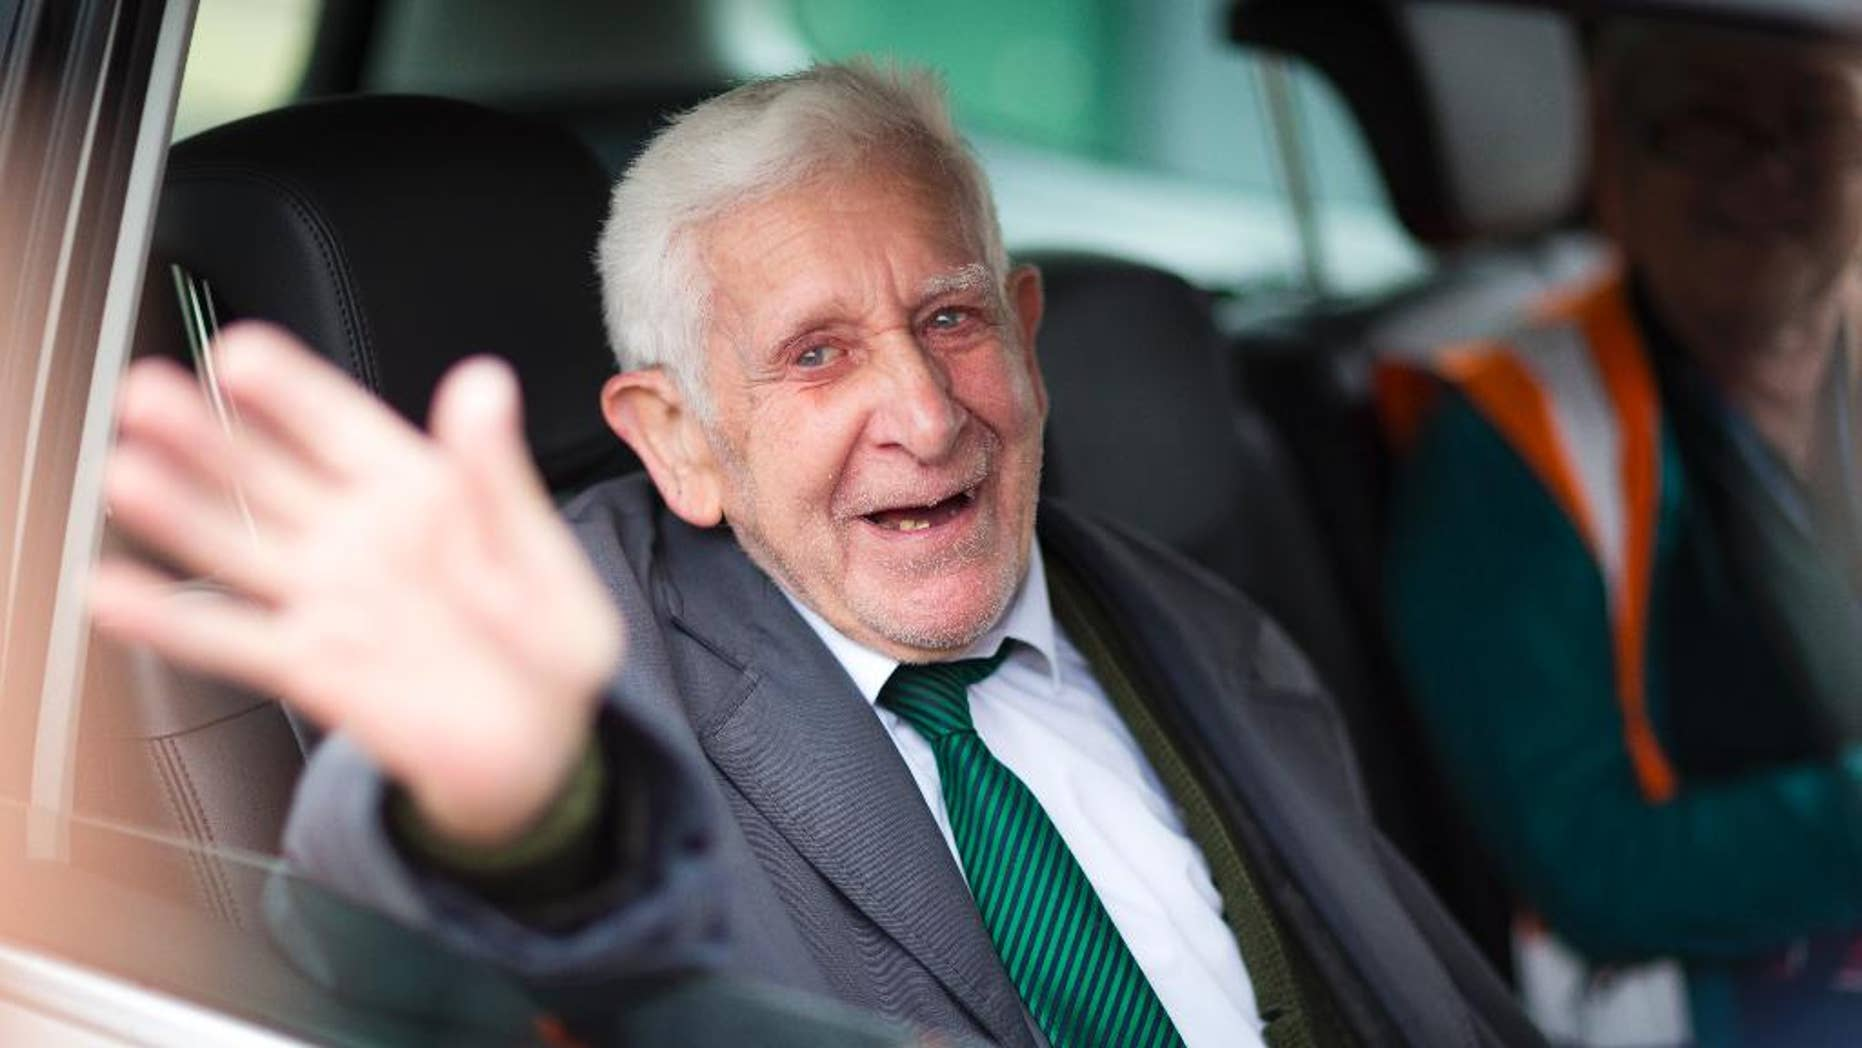 FILE - This is a June 7, 2014  file photo  of  Bernard Jordan, the war veteran found in Normandy after being reported missing from his care home. A British nursing home said an ex-naval officer who gained attention after vanishing from his care facility and taking an impromptu bus ride to France to attend D-Day commemorations has died. Bernard Jordan was 90. Gracewell Healthcare confirmed Jordan's death on Tuesday Jan. 6, 2015. (AP Phto/Chris Ison/PA, File)